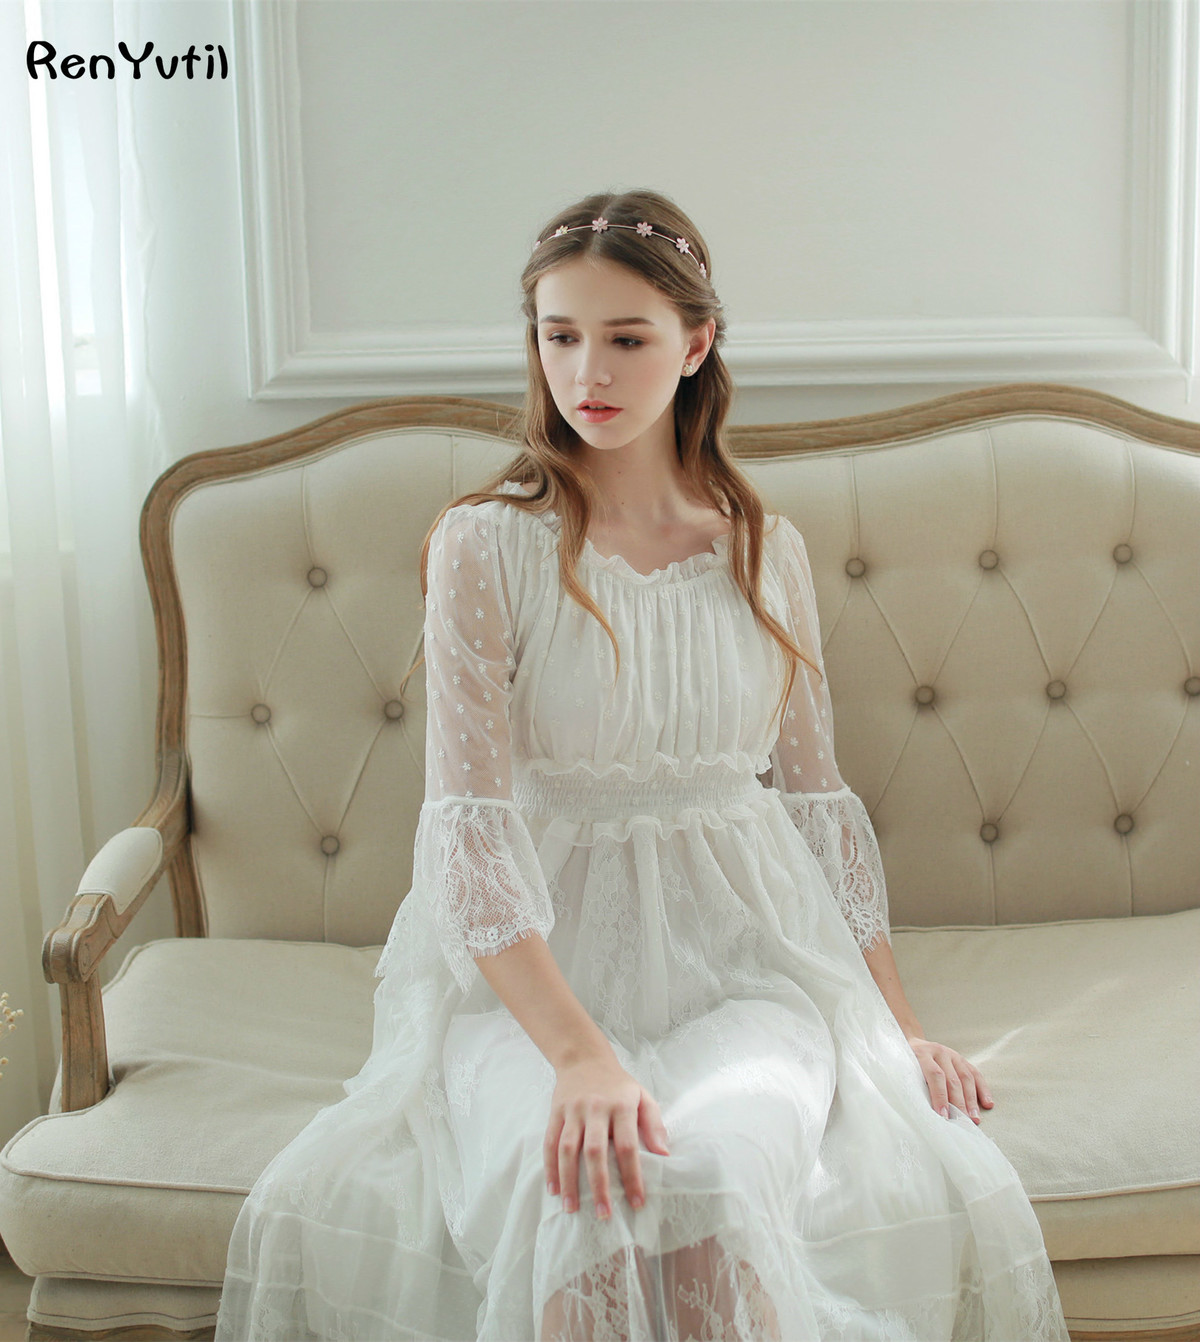 RenYvtil Lace Embroidered Home Woman Spring Gauze Mesh Pyjamas Royal Victorian Long Nightgown Princess Sleepwear Nightdress